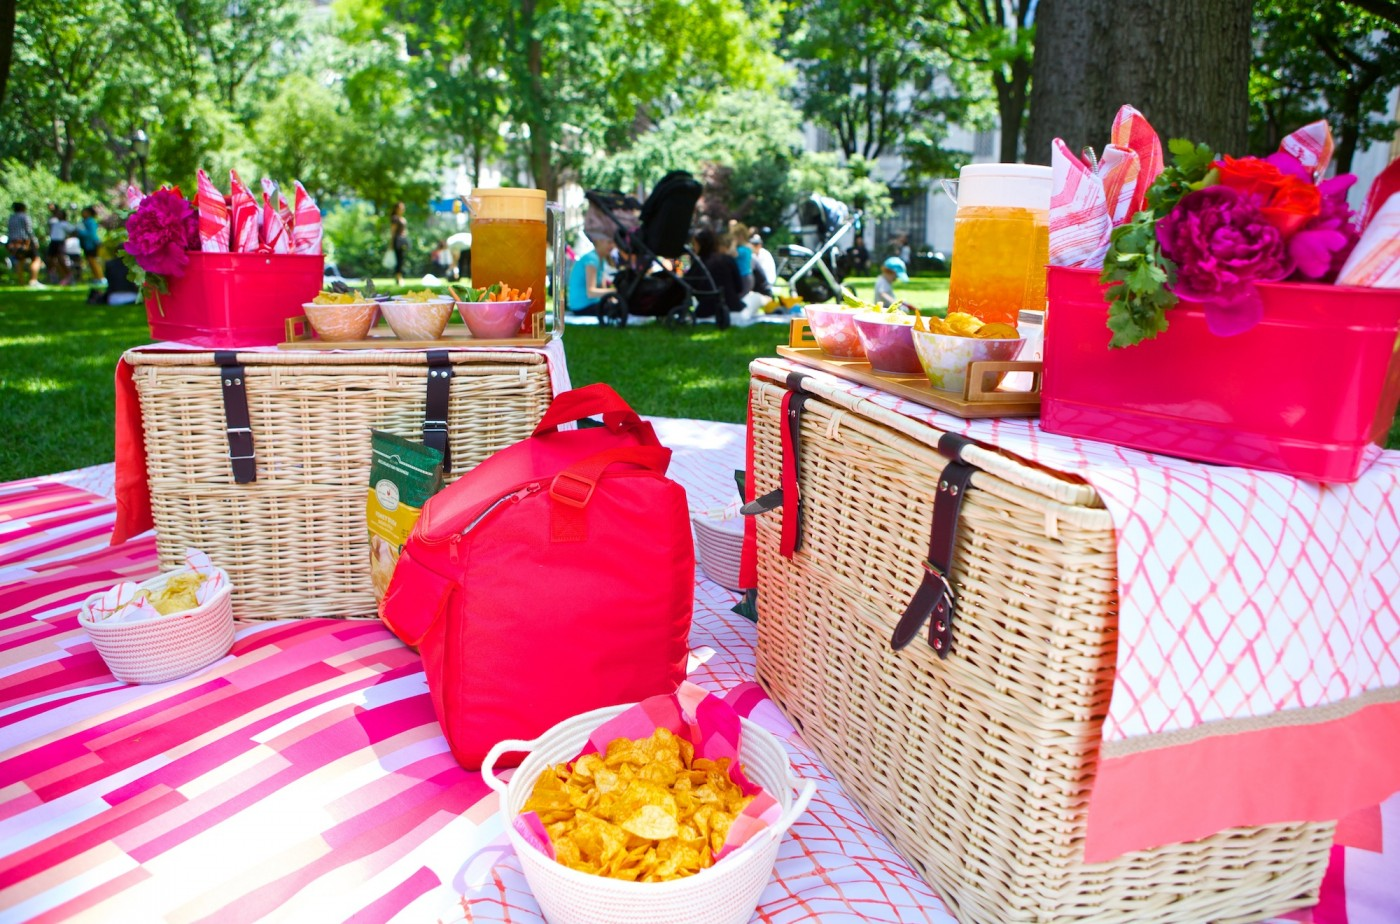 Picnic Blanket Set Up